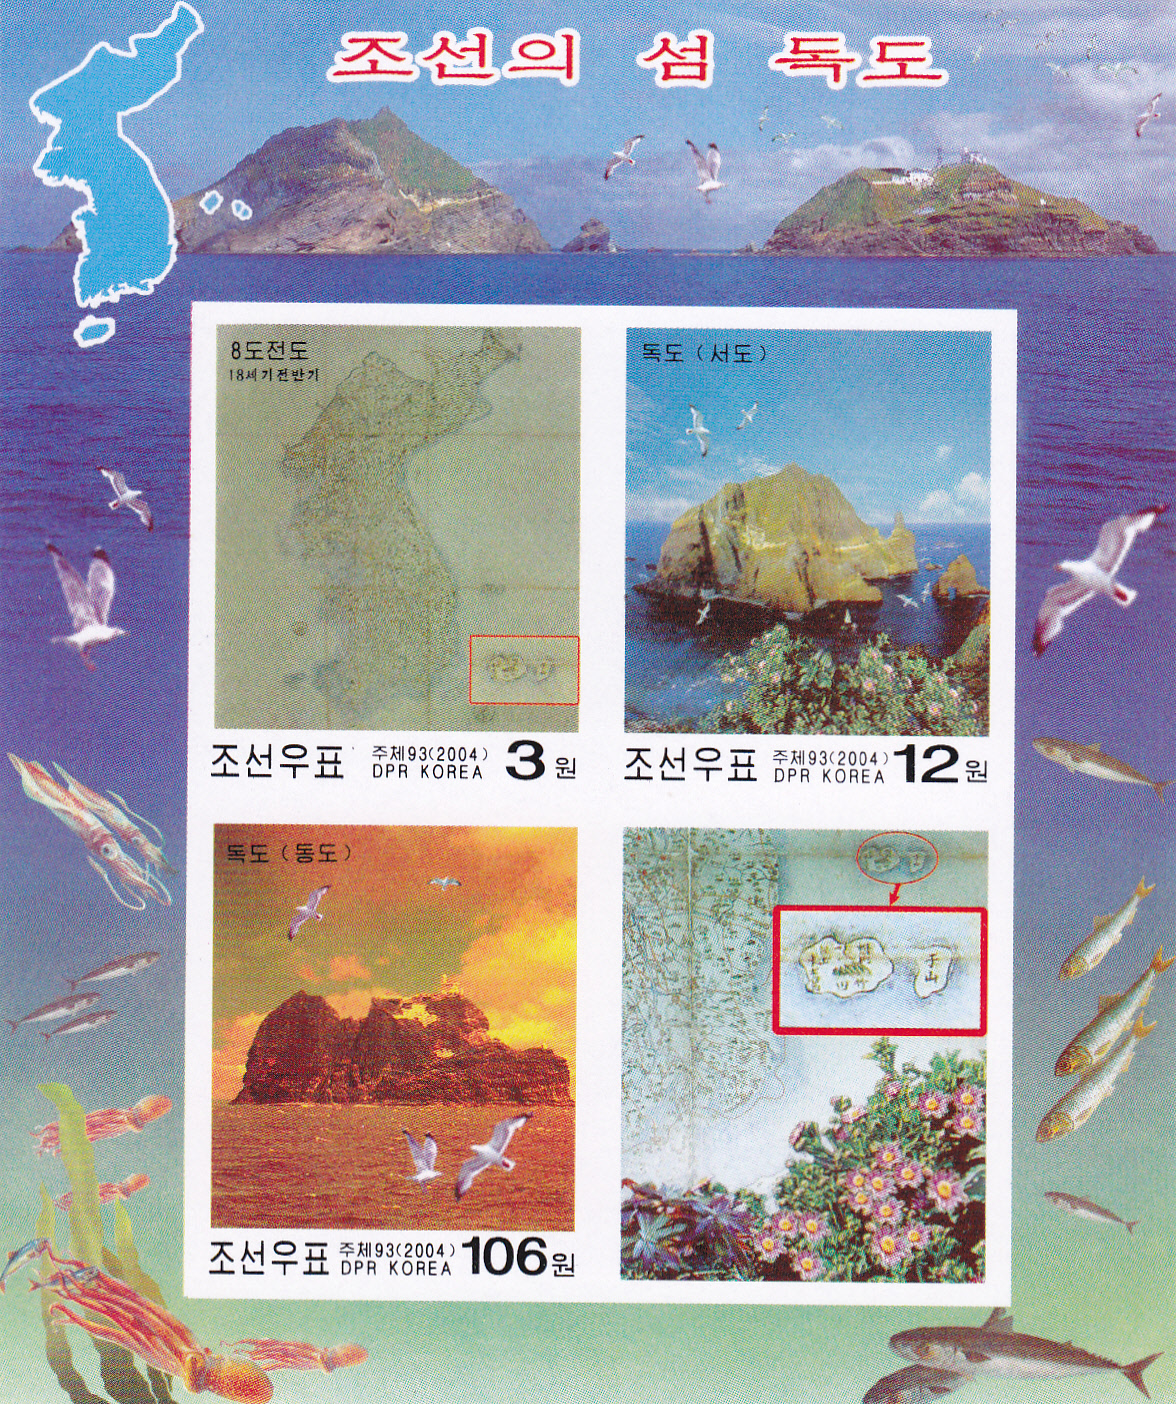 L4315, Korea Dokdo M/S Stamp, Dokdo Islands Map (Takeshima) 2004, Imperforation